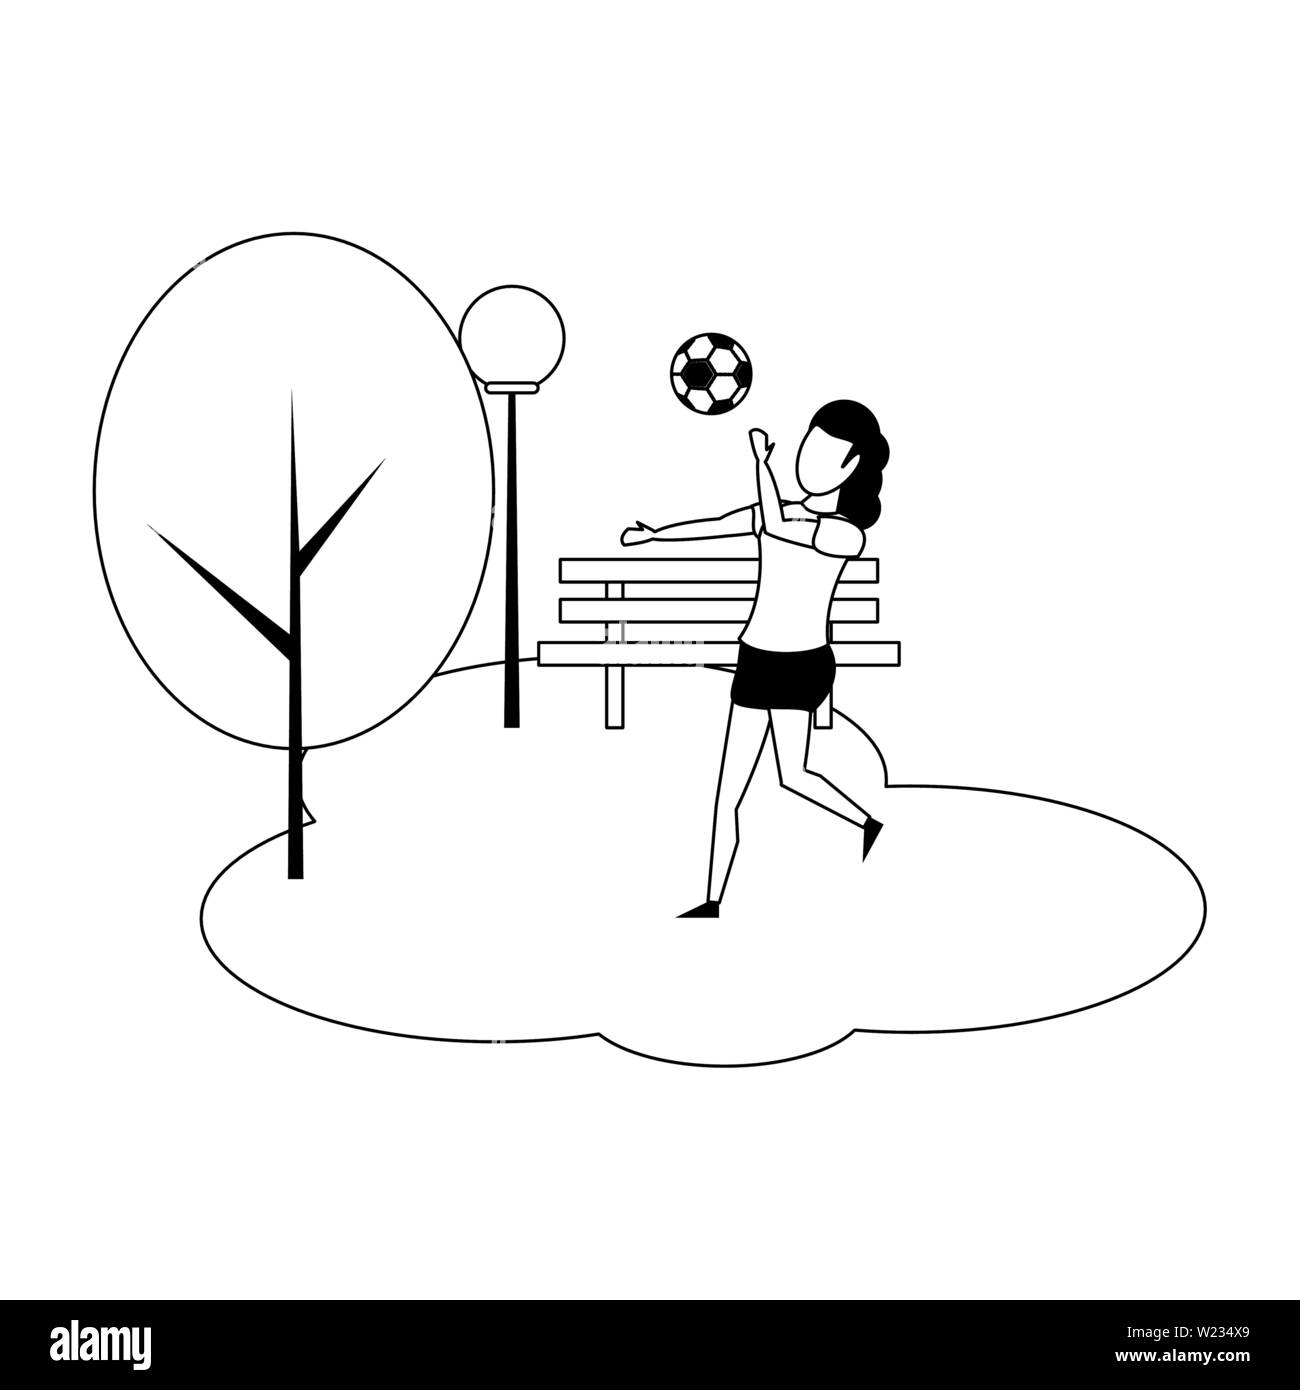 Woman playing with soccer ball at park in black and white - Stock Image